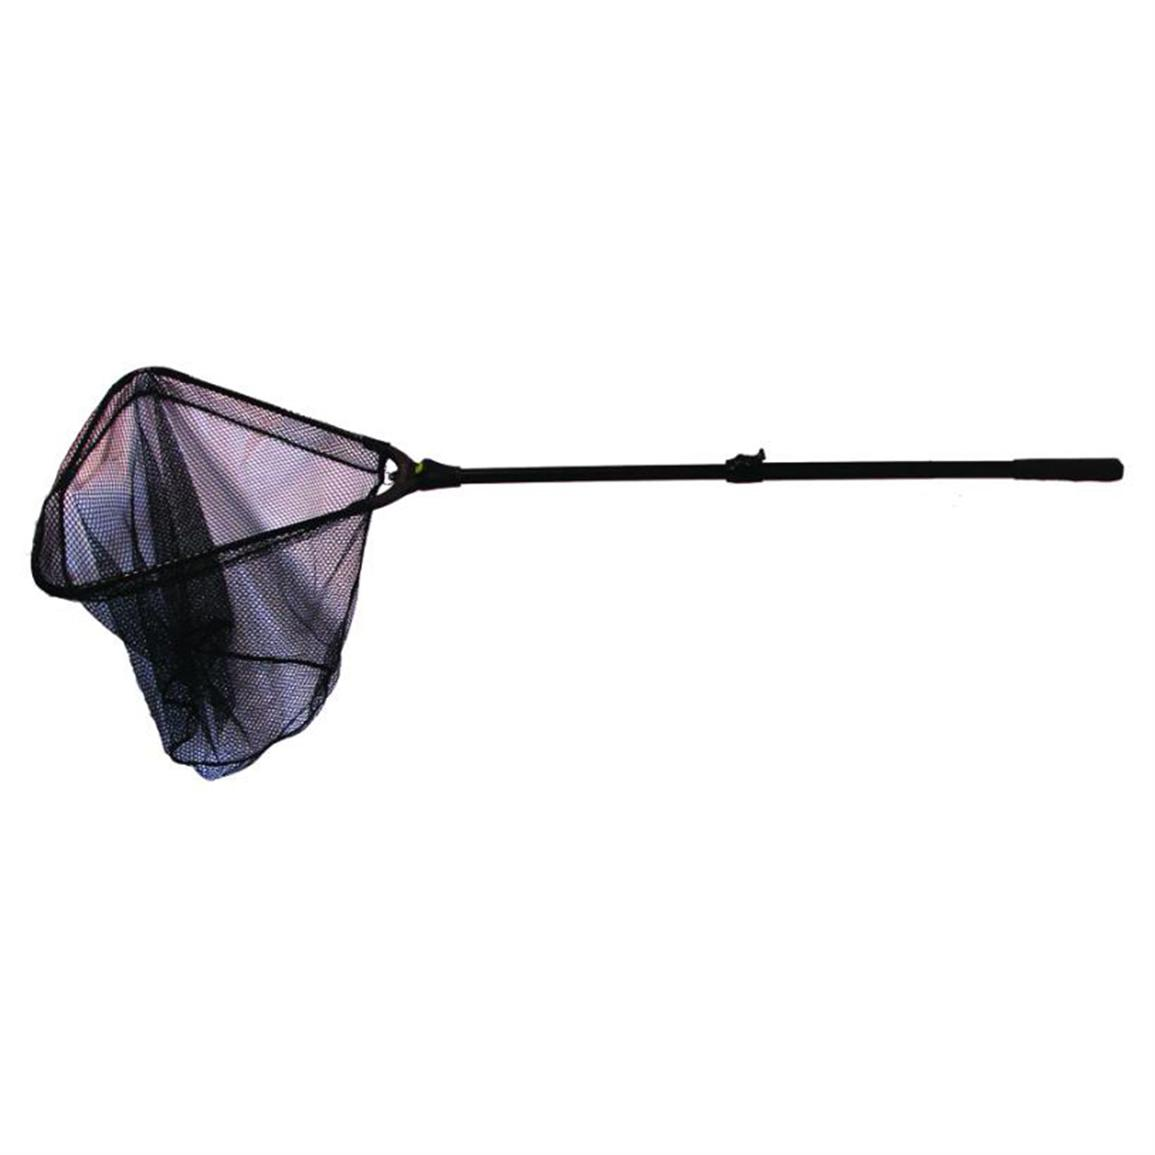 Frabill Folding Net with Telescoping Handle, 18